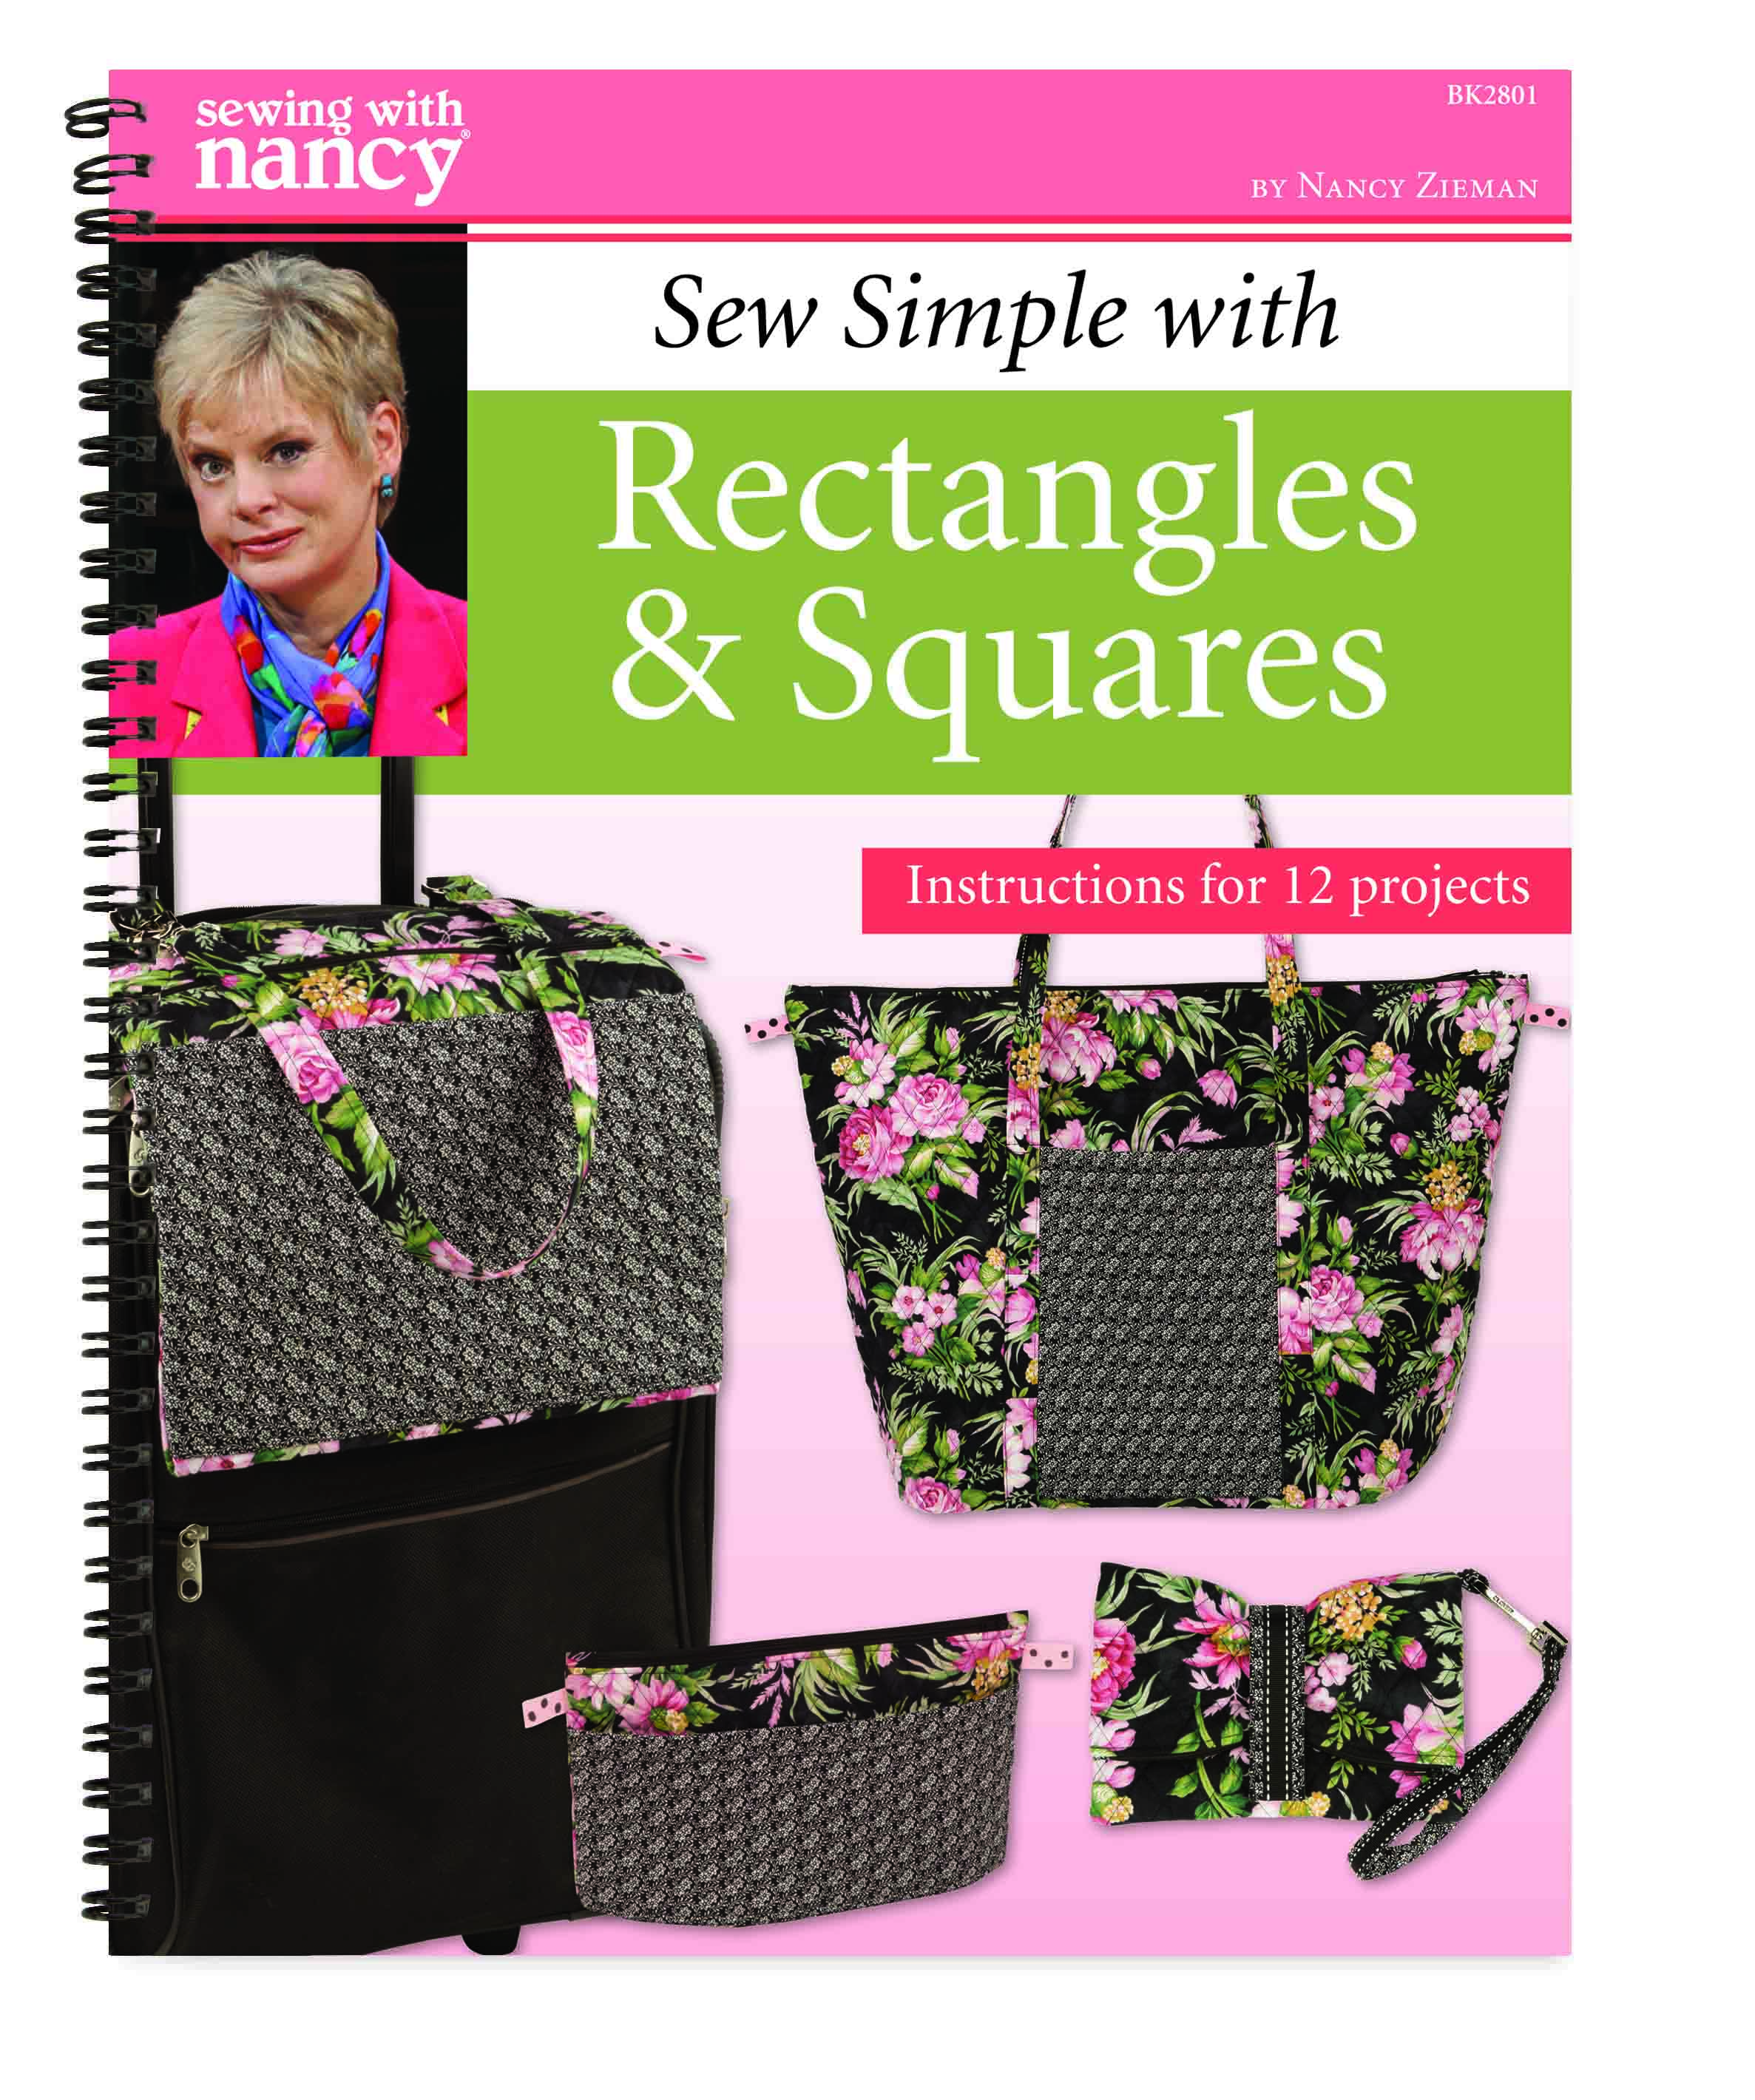 Sew Simple with Rectangles & Squares Book by Nancy Zieman